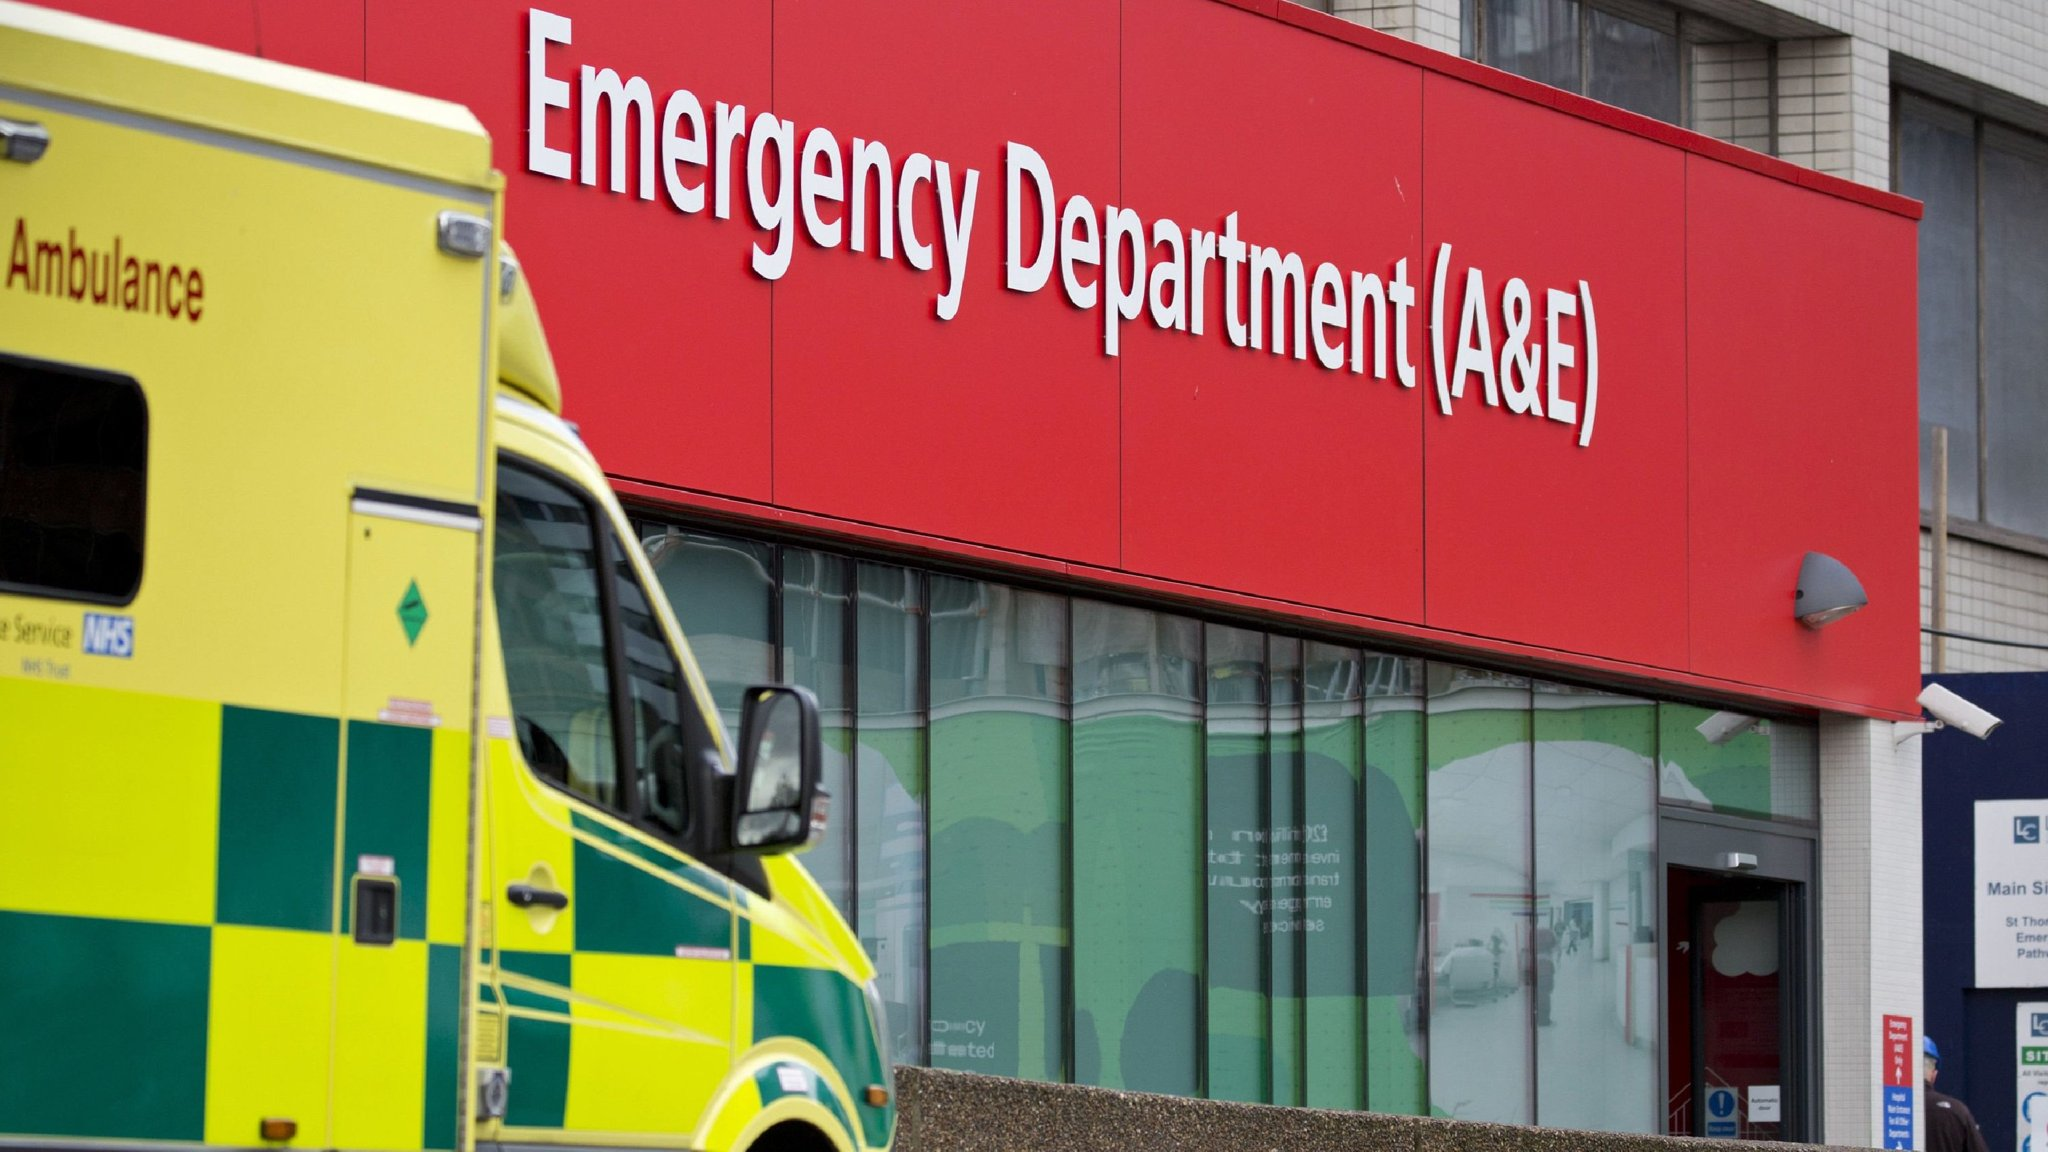 NHS fights to restore services after global hack | Financial